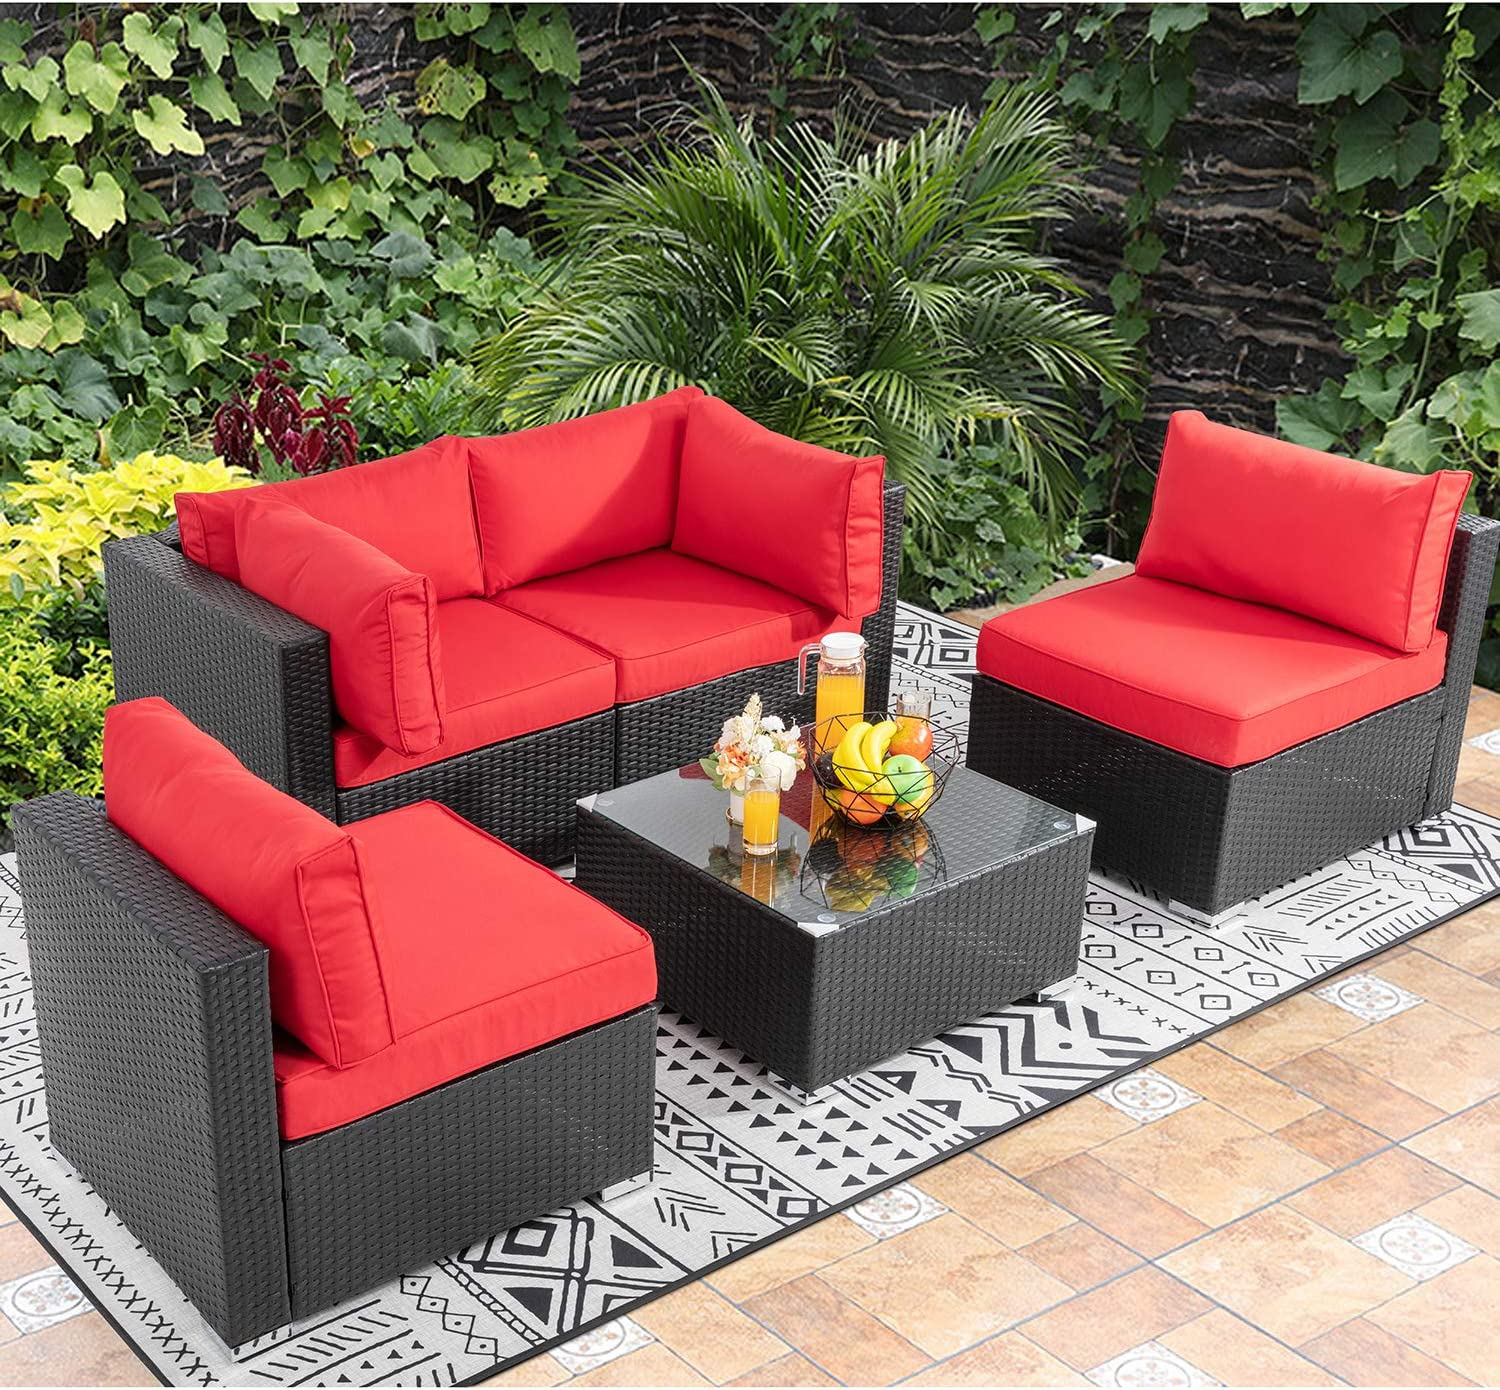 Walsunny 5pcs Patio Outdoor Furniture Sets, Low Back All-Weather Rattan Sectional Sofa with Tea Table&Washable Couch Cushions (Black Rattan) (Red) : Garden & Outdoor